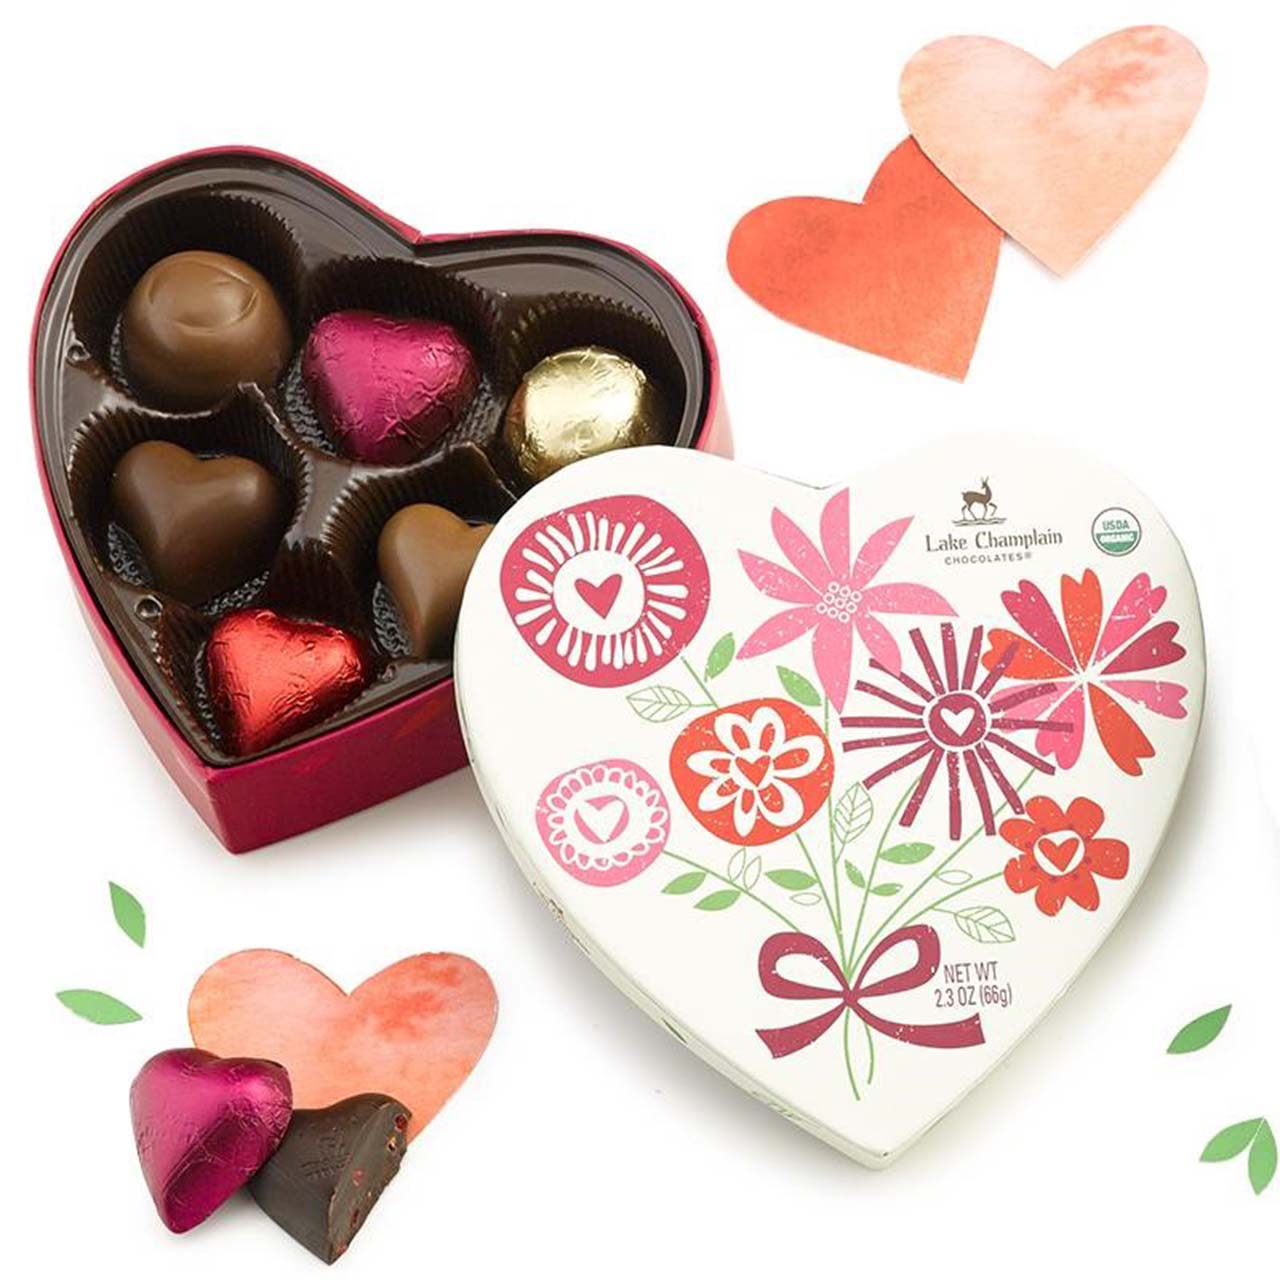 Celebration Organic Heart Box